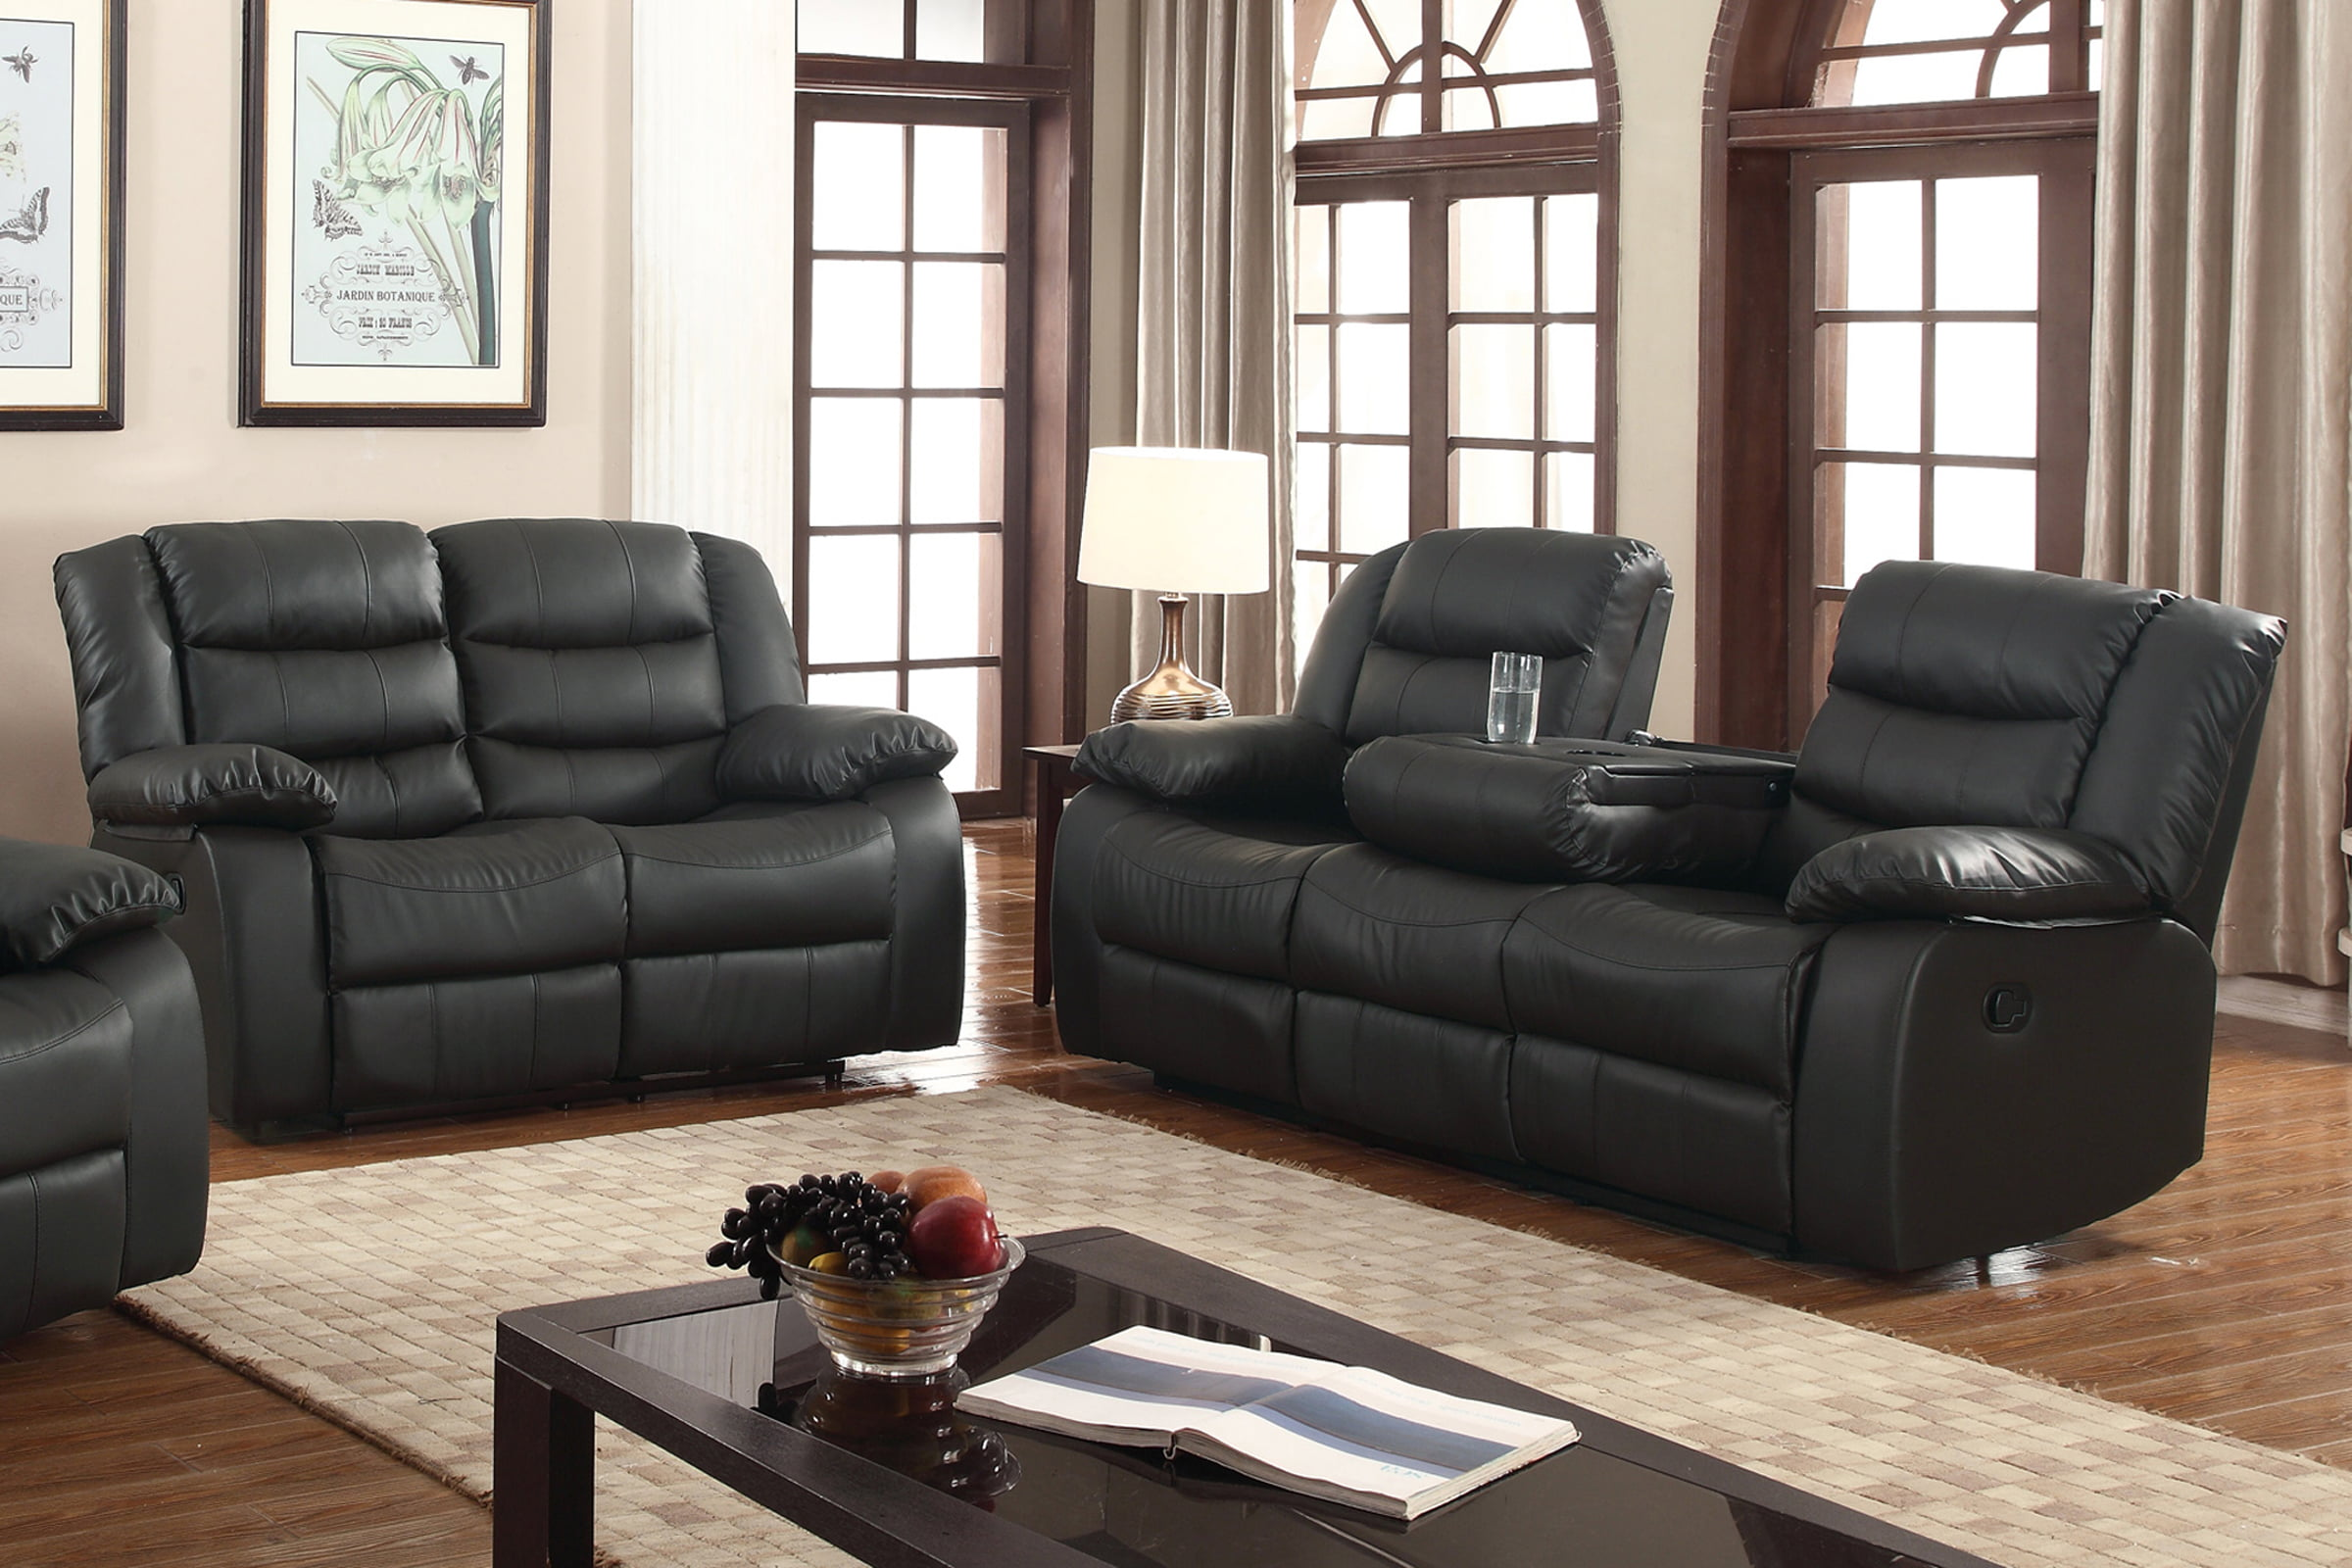 layla 2 pc black faux leather living room reclining sofa and loveseat set with dropdown tea table walmartcom - Black Leather Loveseat